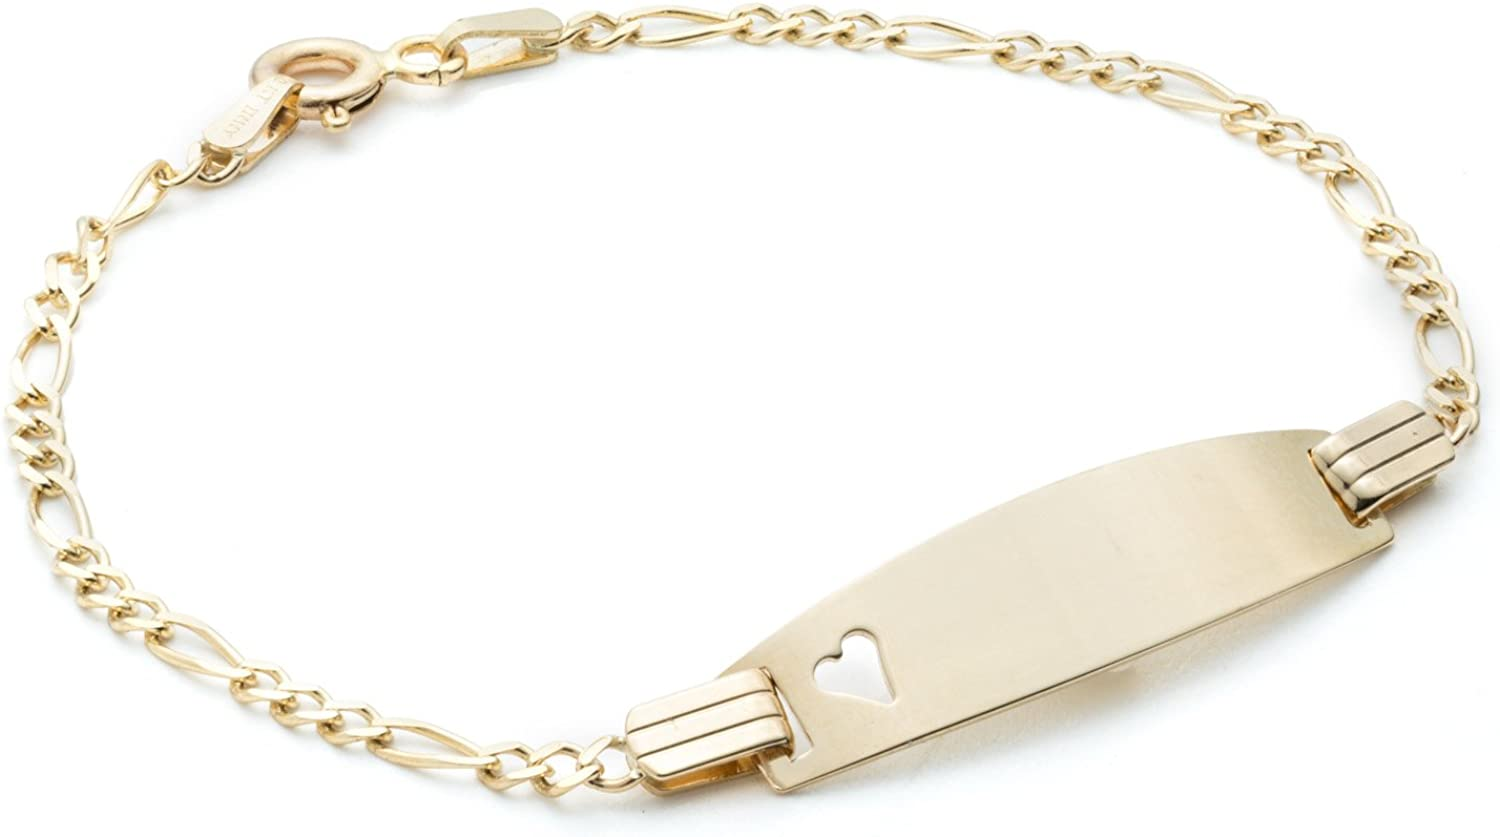 Floreo 10k Yellow Gold Figaro Customized ID Bracelet with Small Heart Free Engraving for Children 2mm